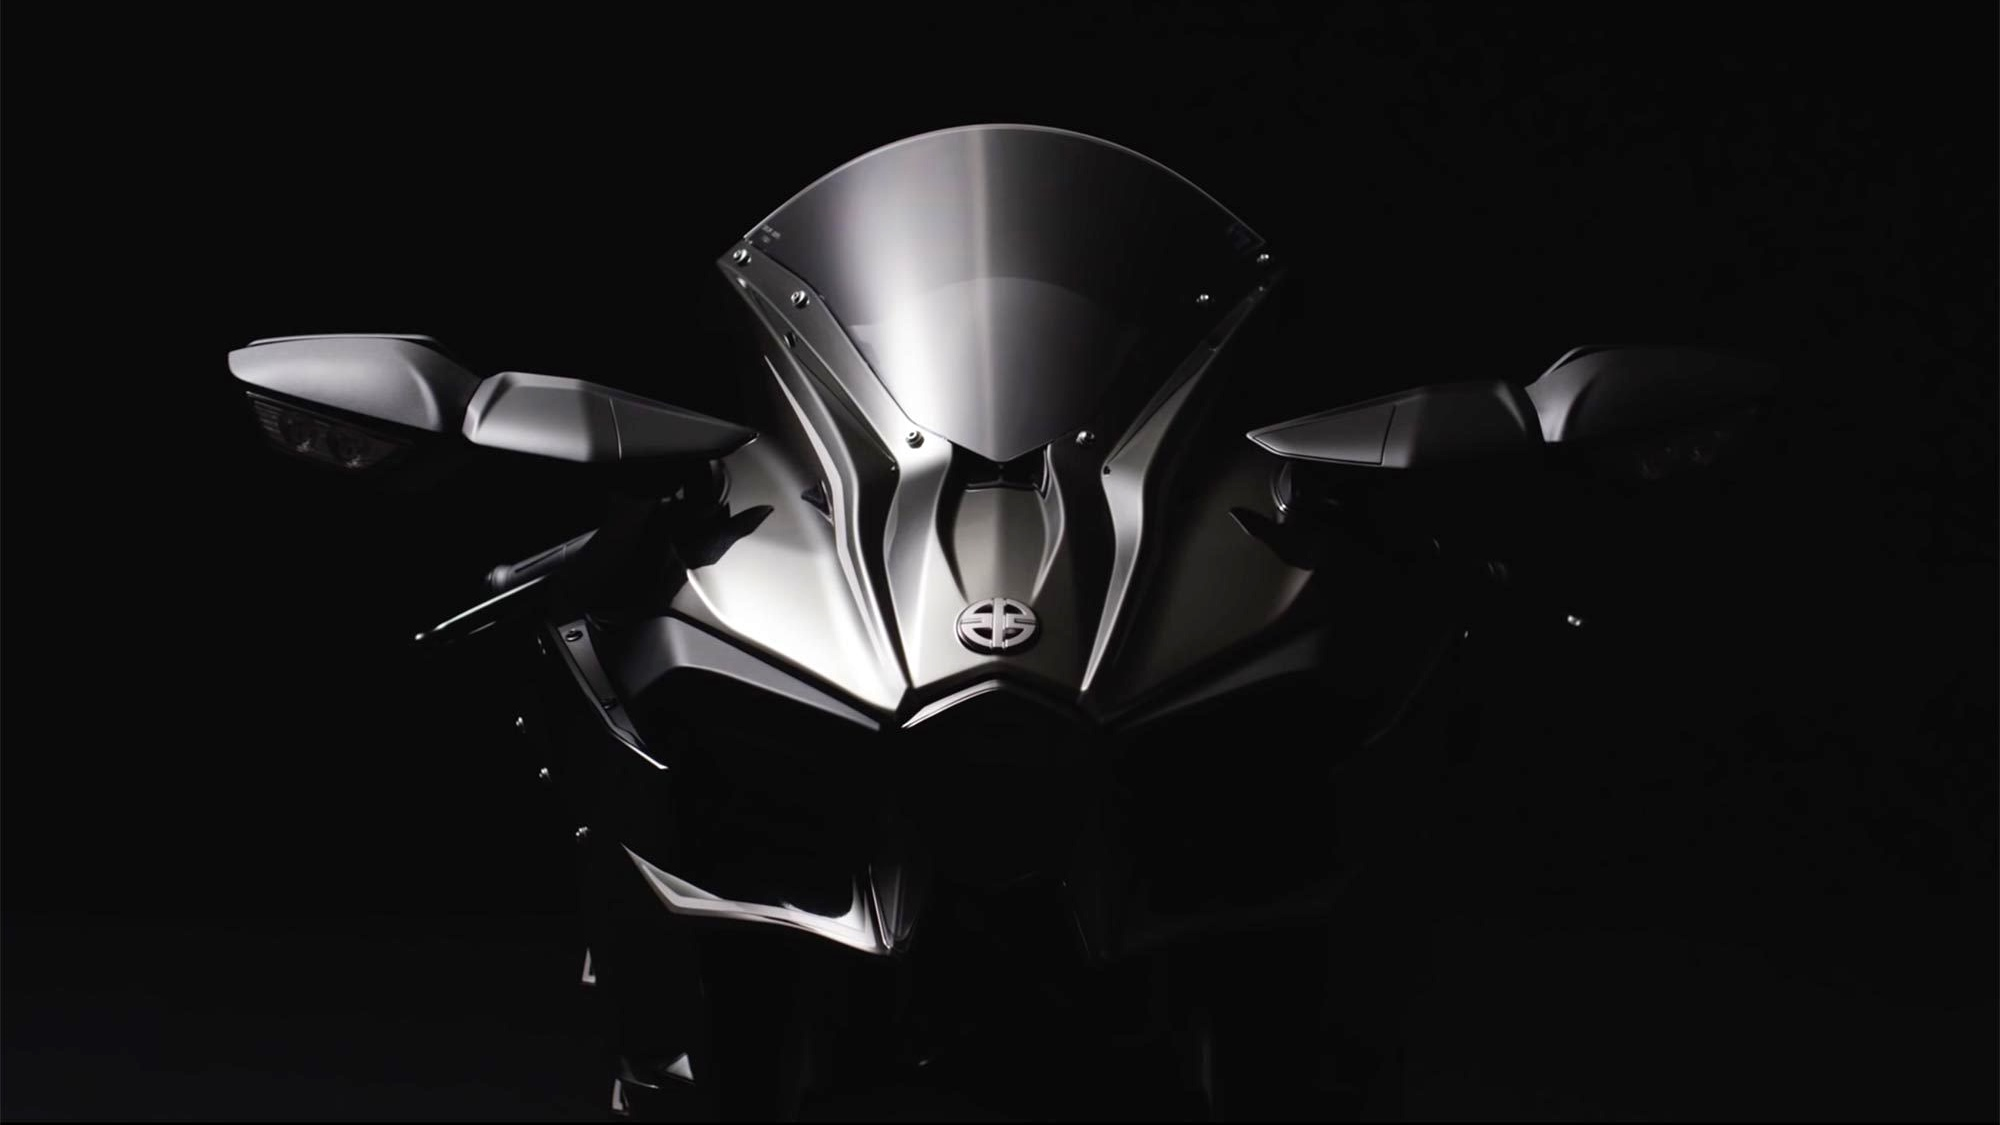 2016 Kawasaki Ninja H2 black colour